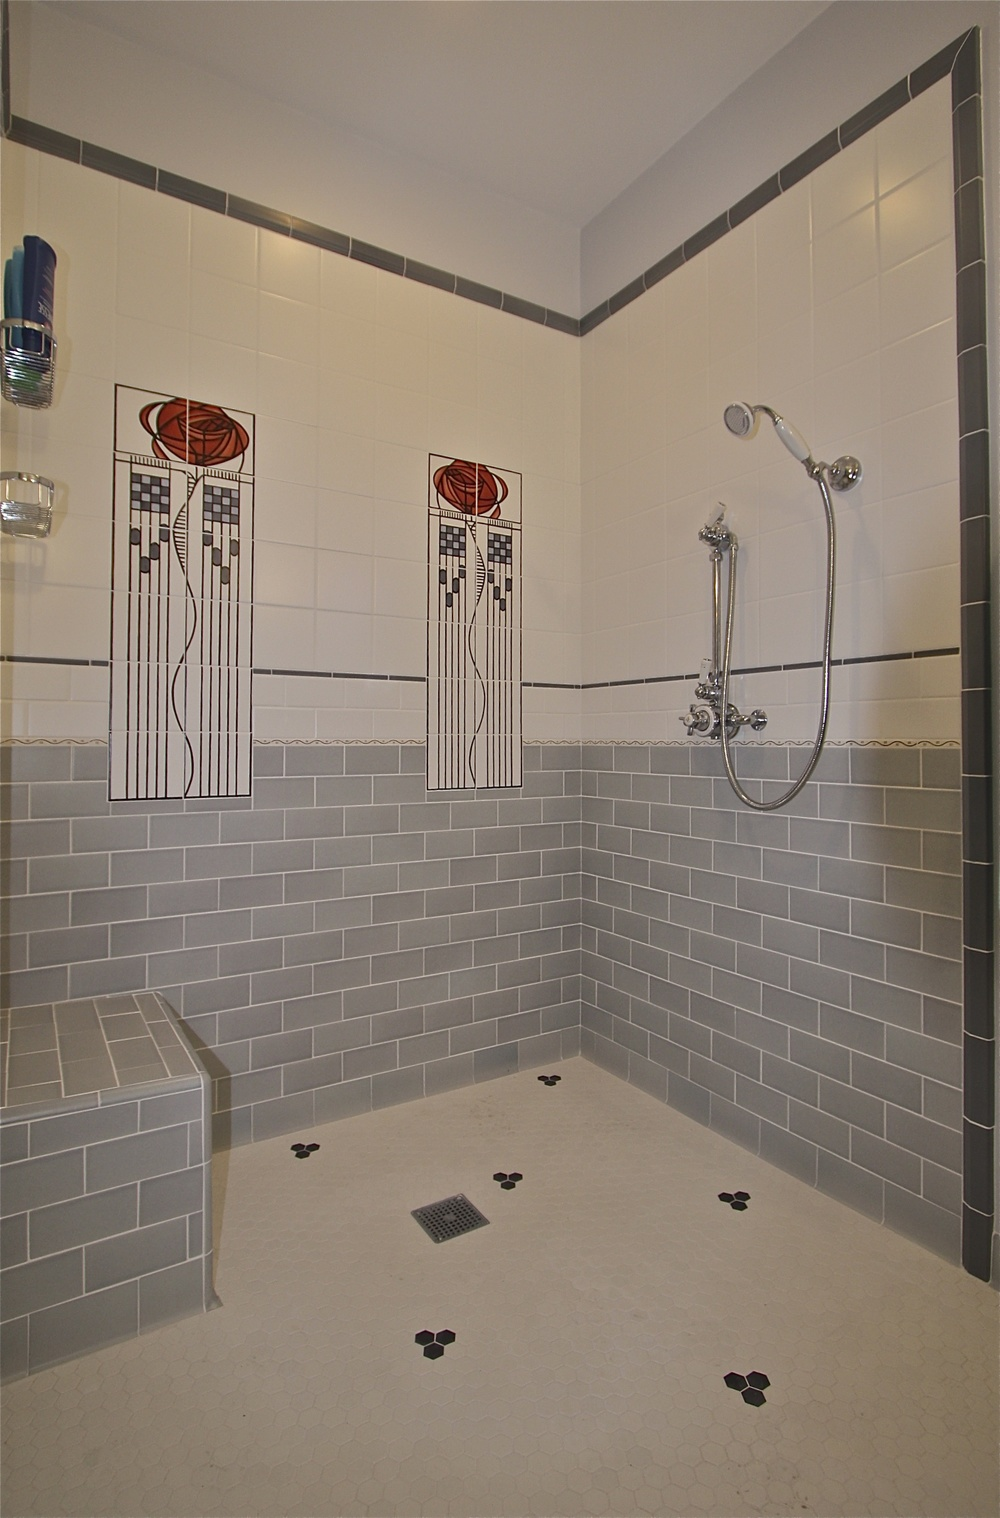 After: New damless shower incorporating 12 sq. ft. of area from adjoining half bath.